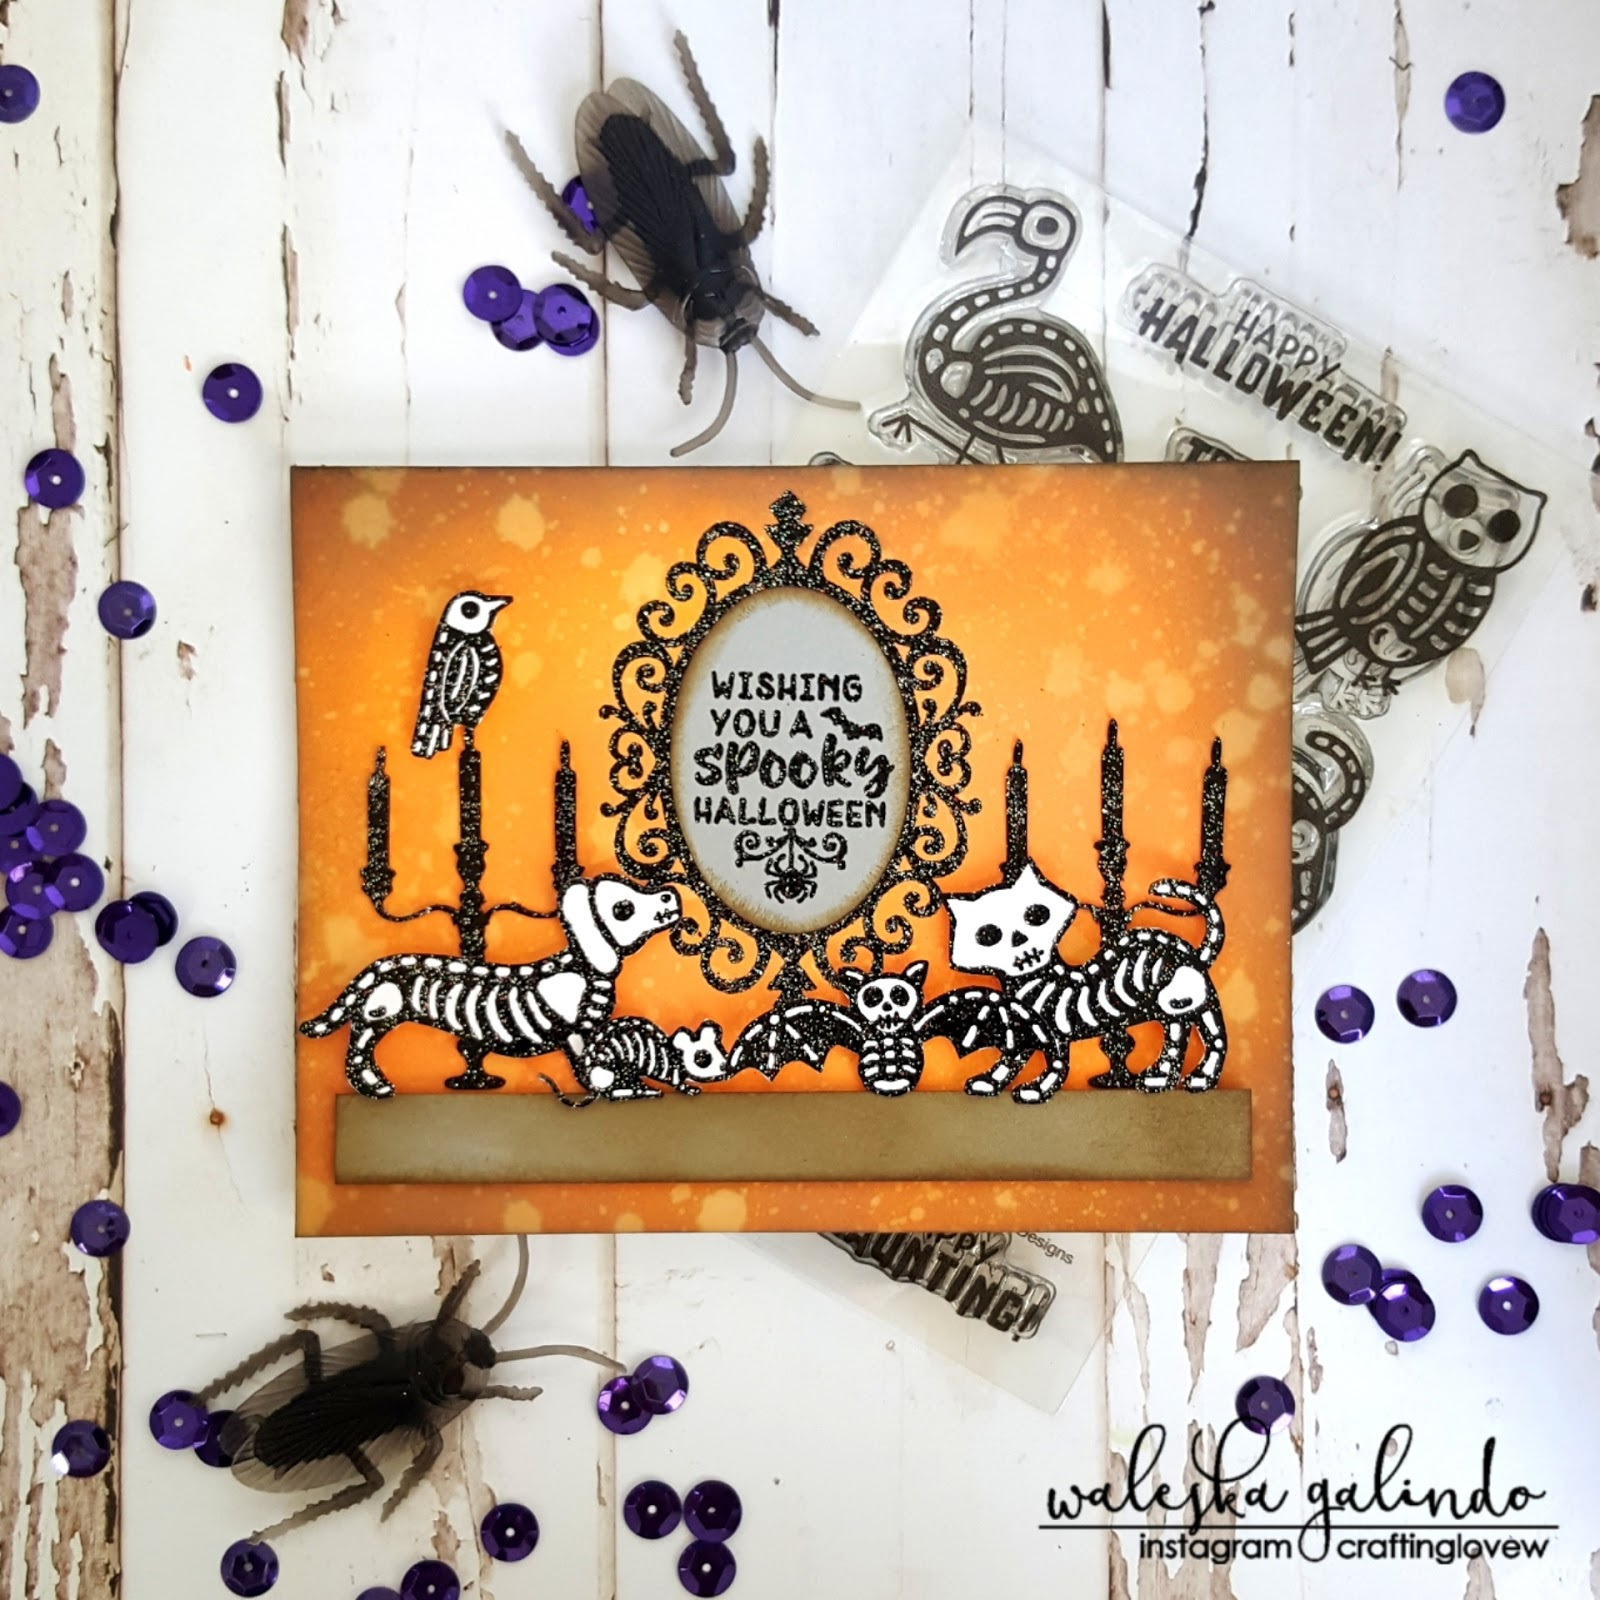 Spooky Halloween Wishes by October Guest Designer Waleska Galindo   Spooky Skeletons and Creepy Cameo Stamp Sets by Newton's Nook Designs #newtonsnook